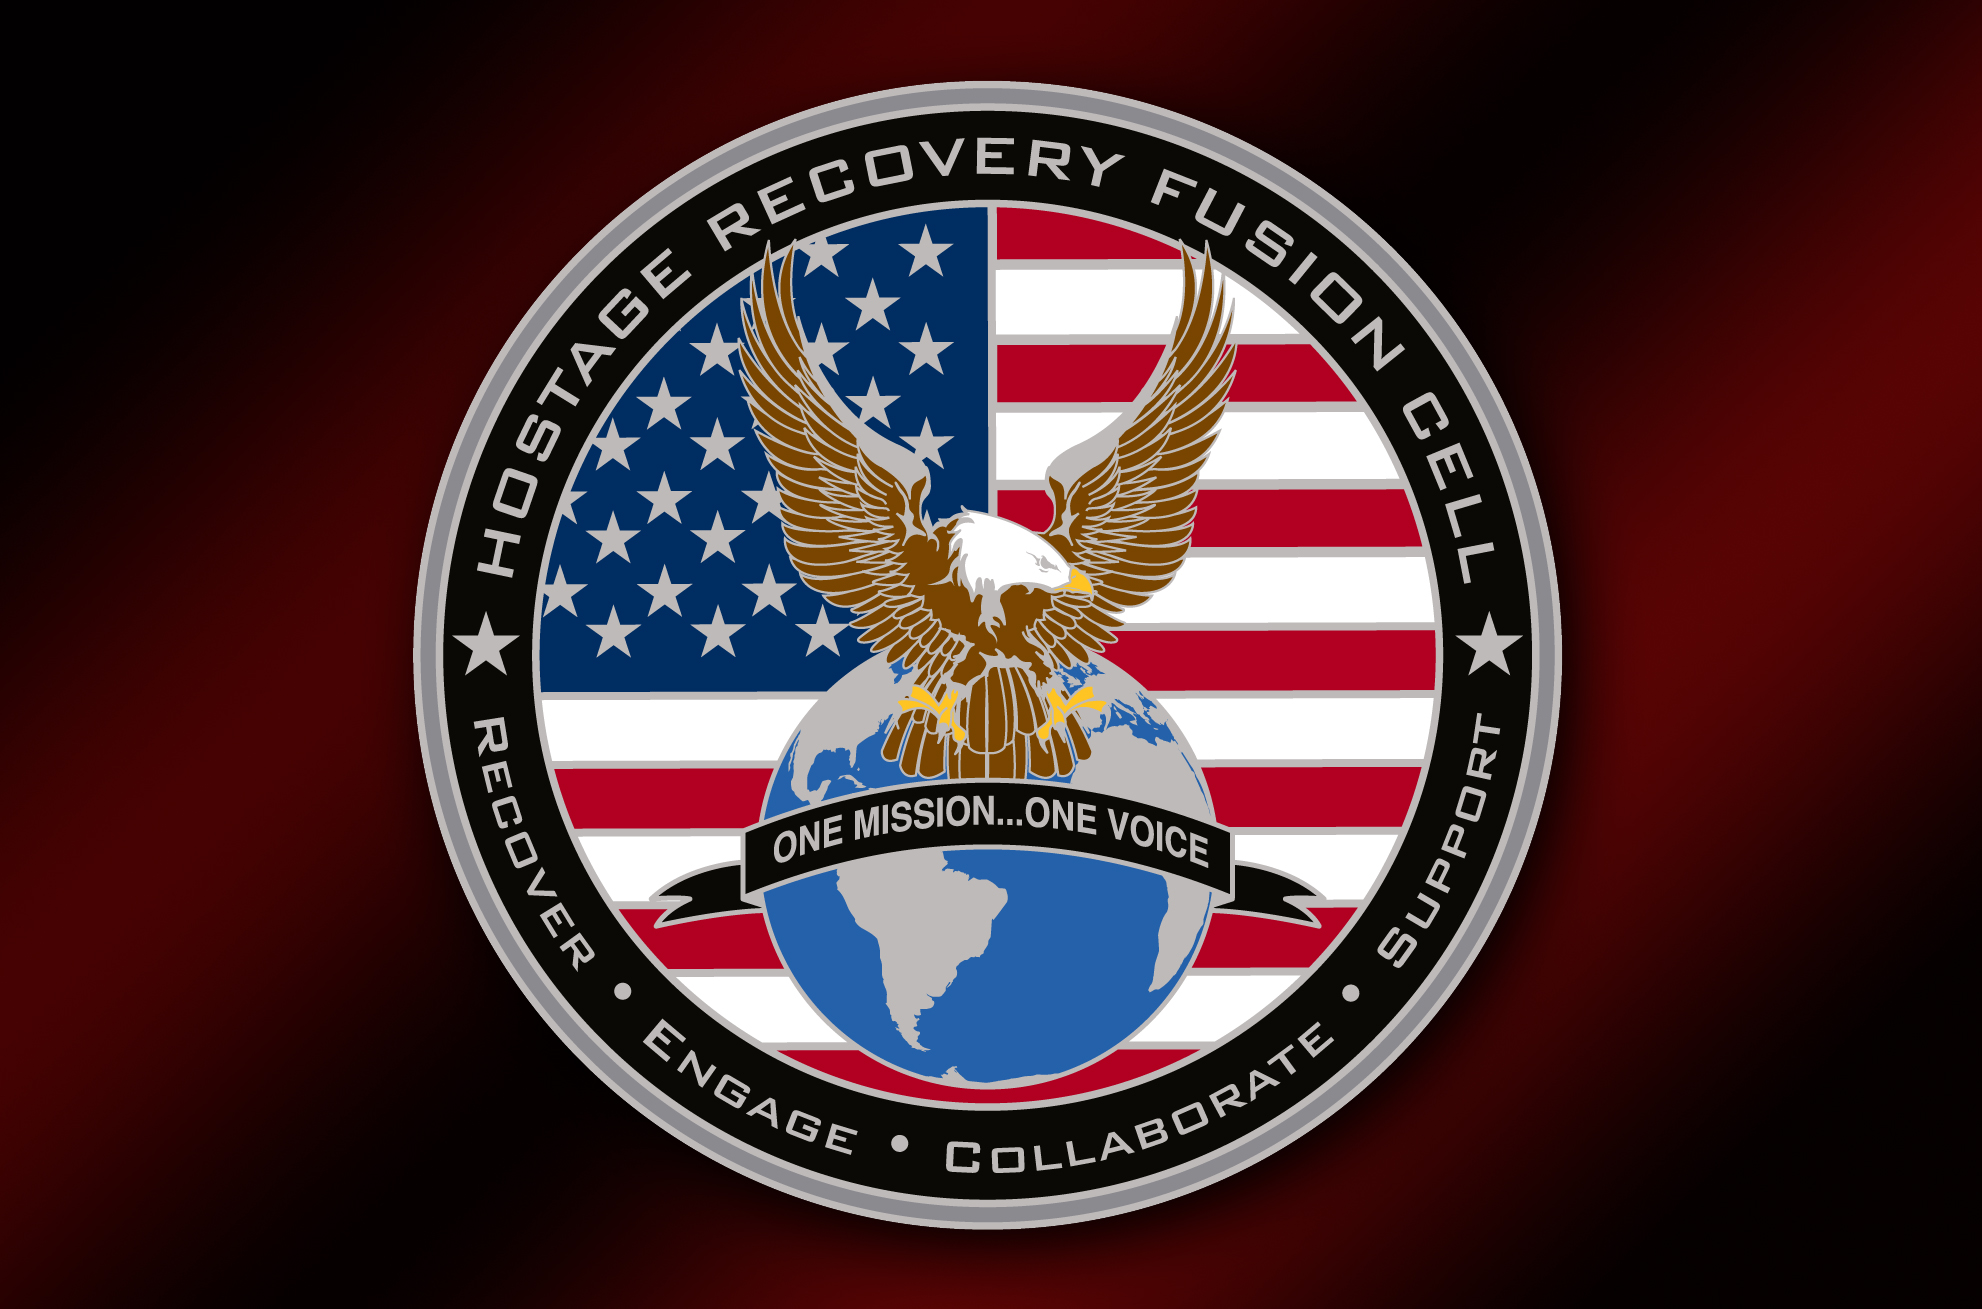 Hostage Recovery Fusion Cell seal with images of globe, bald eagle, and American flag; text includes Recover, Engage, Collaborate, Support, One Mission…One Voice.